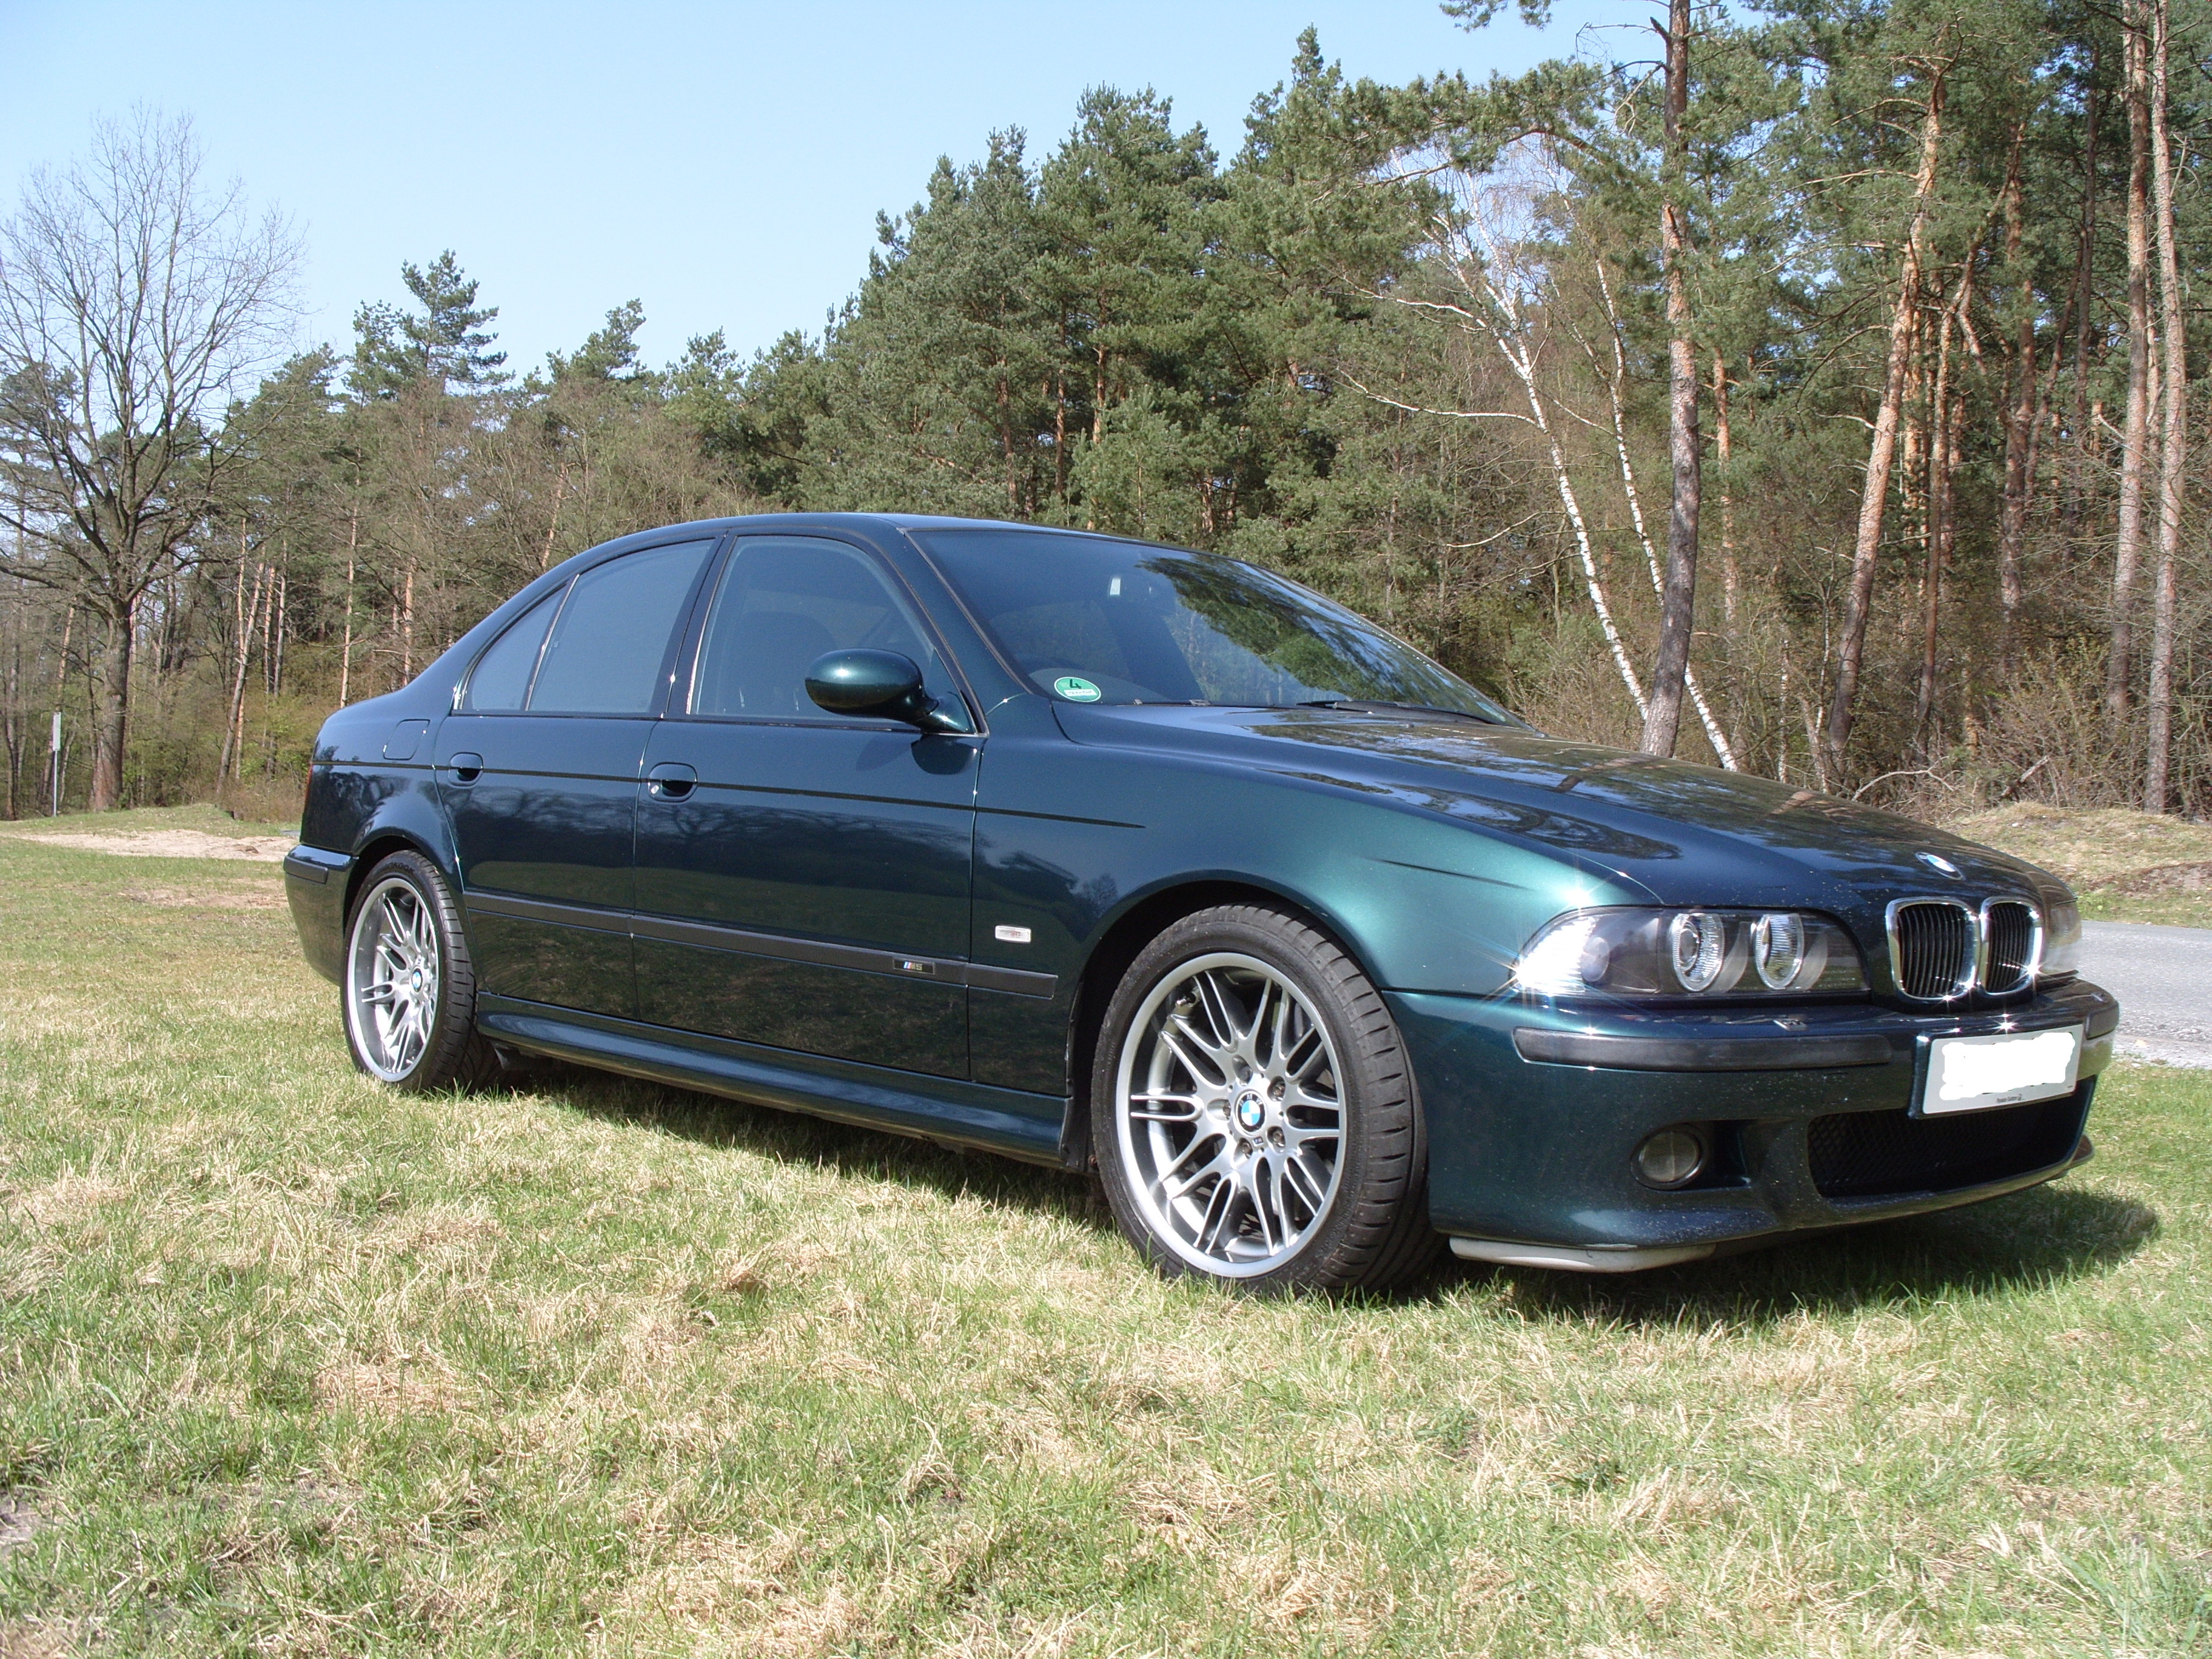 Oxford Green E39 M5 Decent Pics At Last-s1050171.jpg